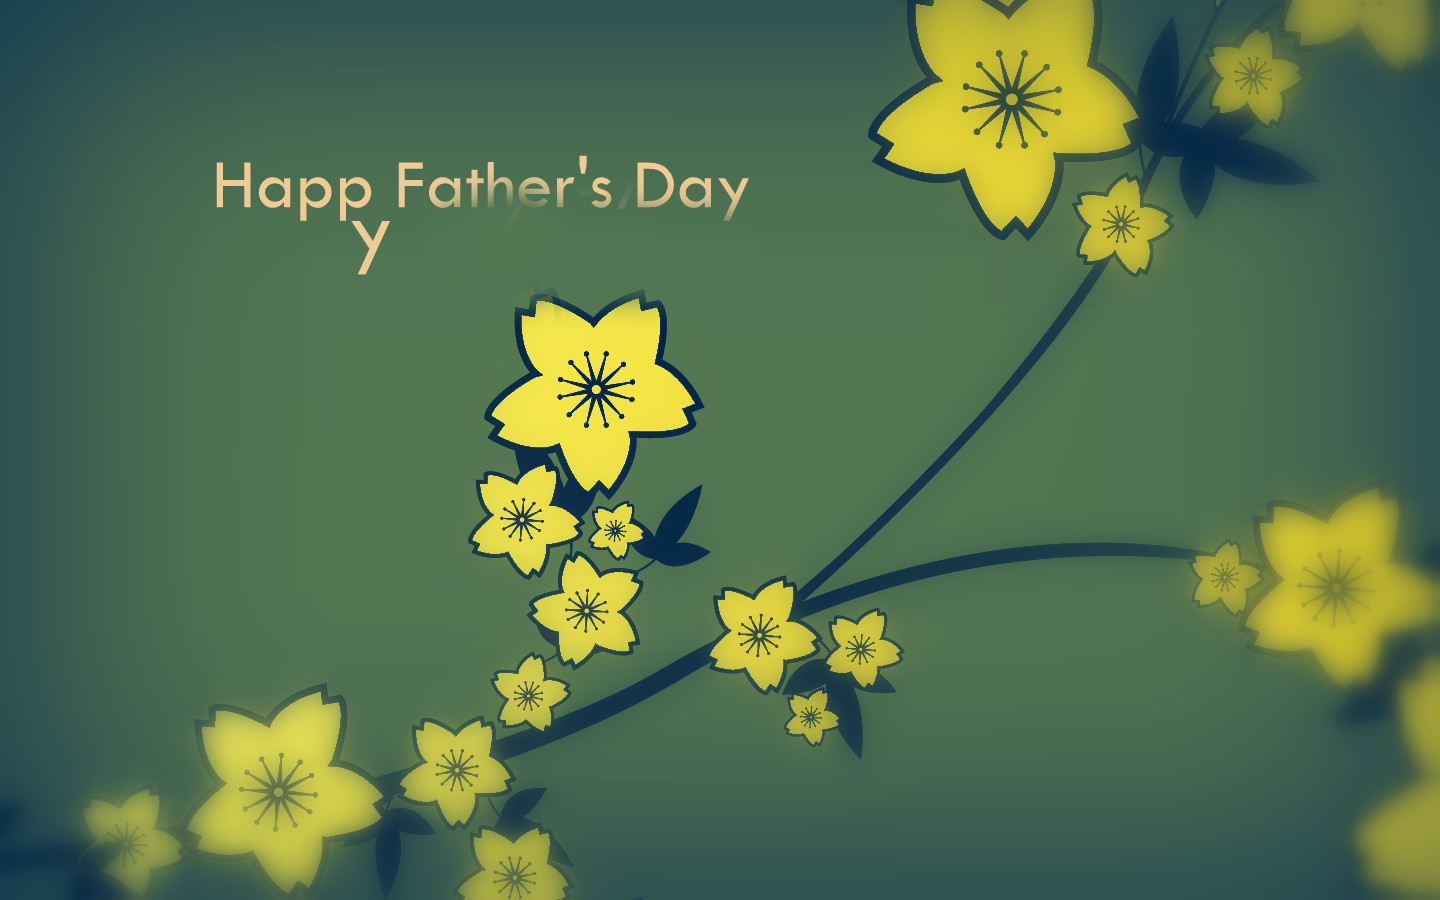 hight resolution of happy fathers day 2018 wallpapers desktop backgrounds